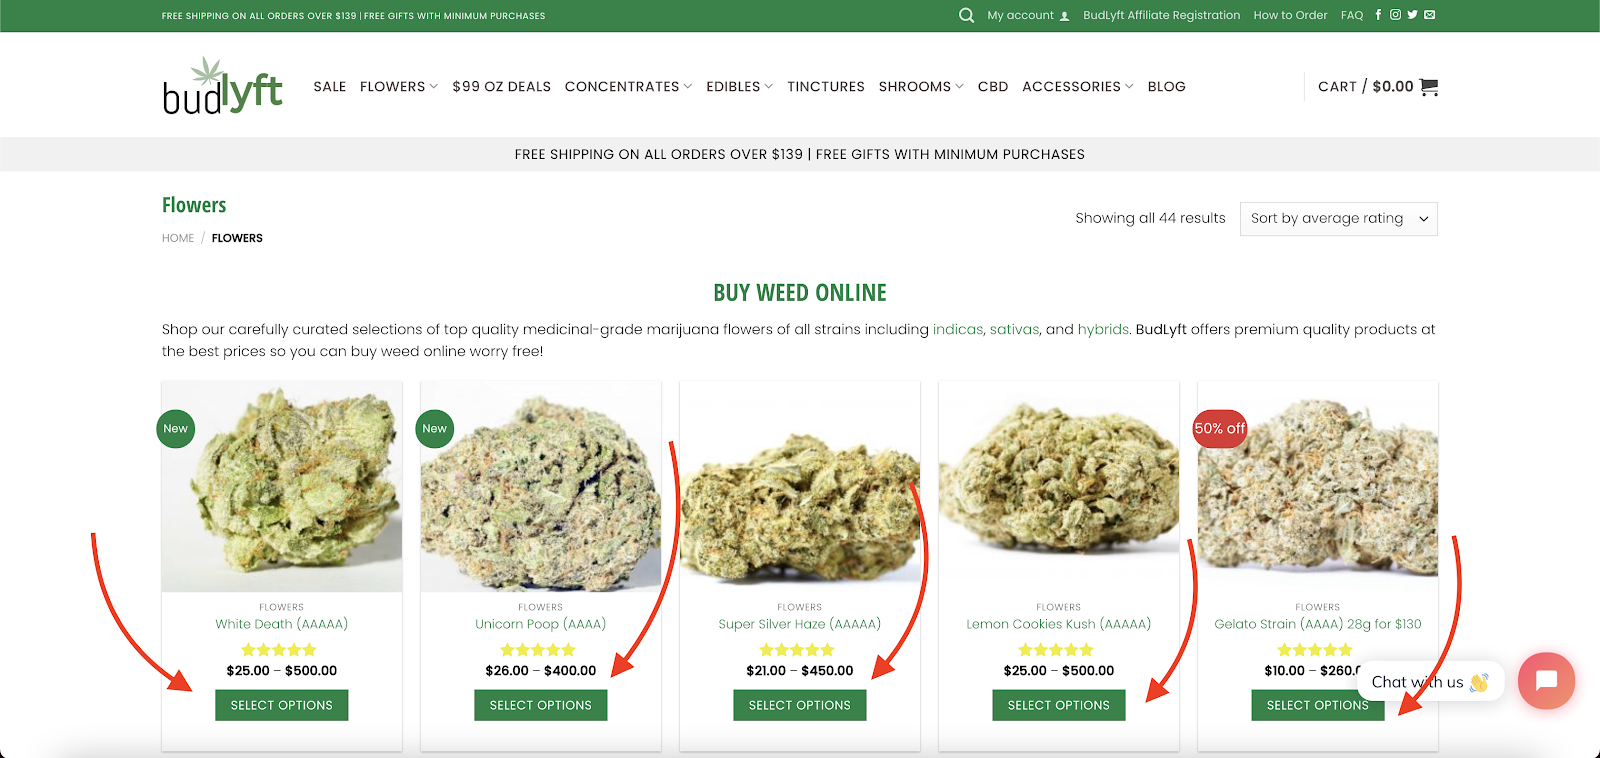 Buy Weed Online - Select Options